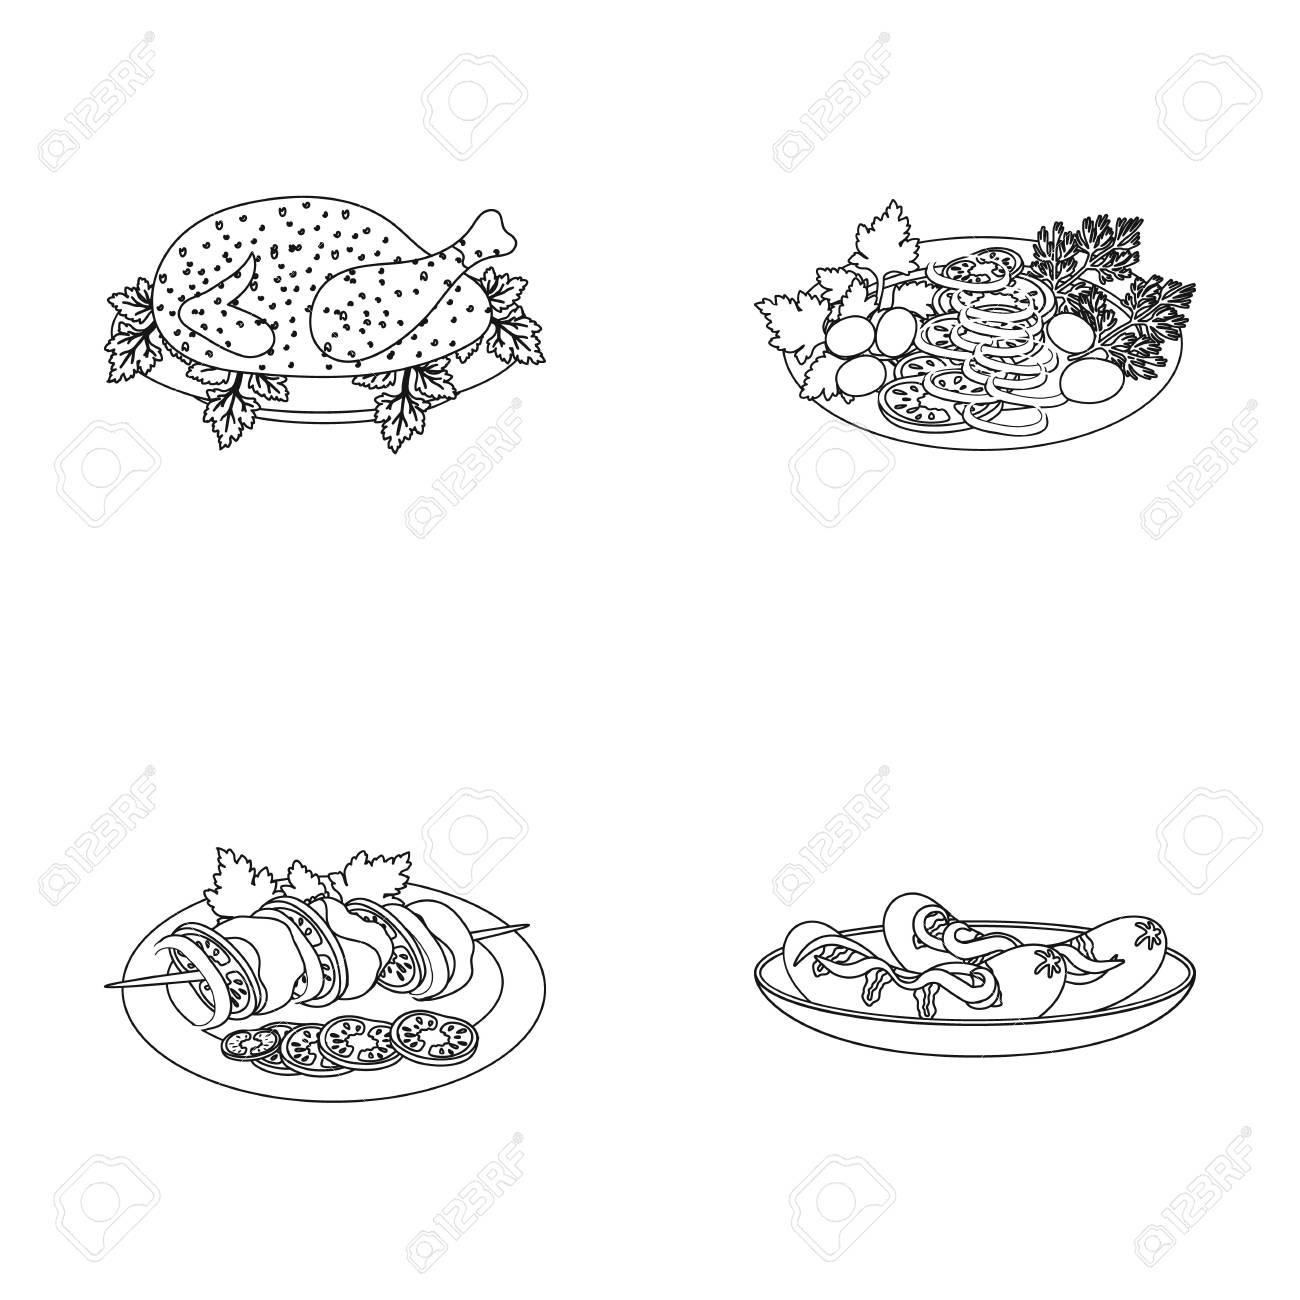 Fastfood, food, cooked, chicken, fried, crispy, meal icon - Free download